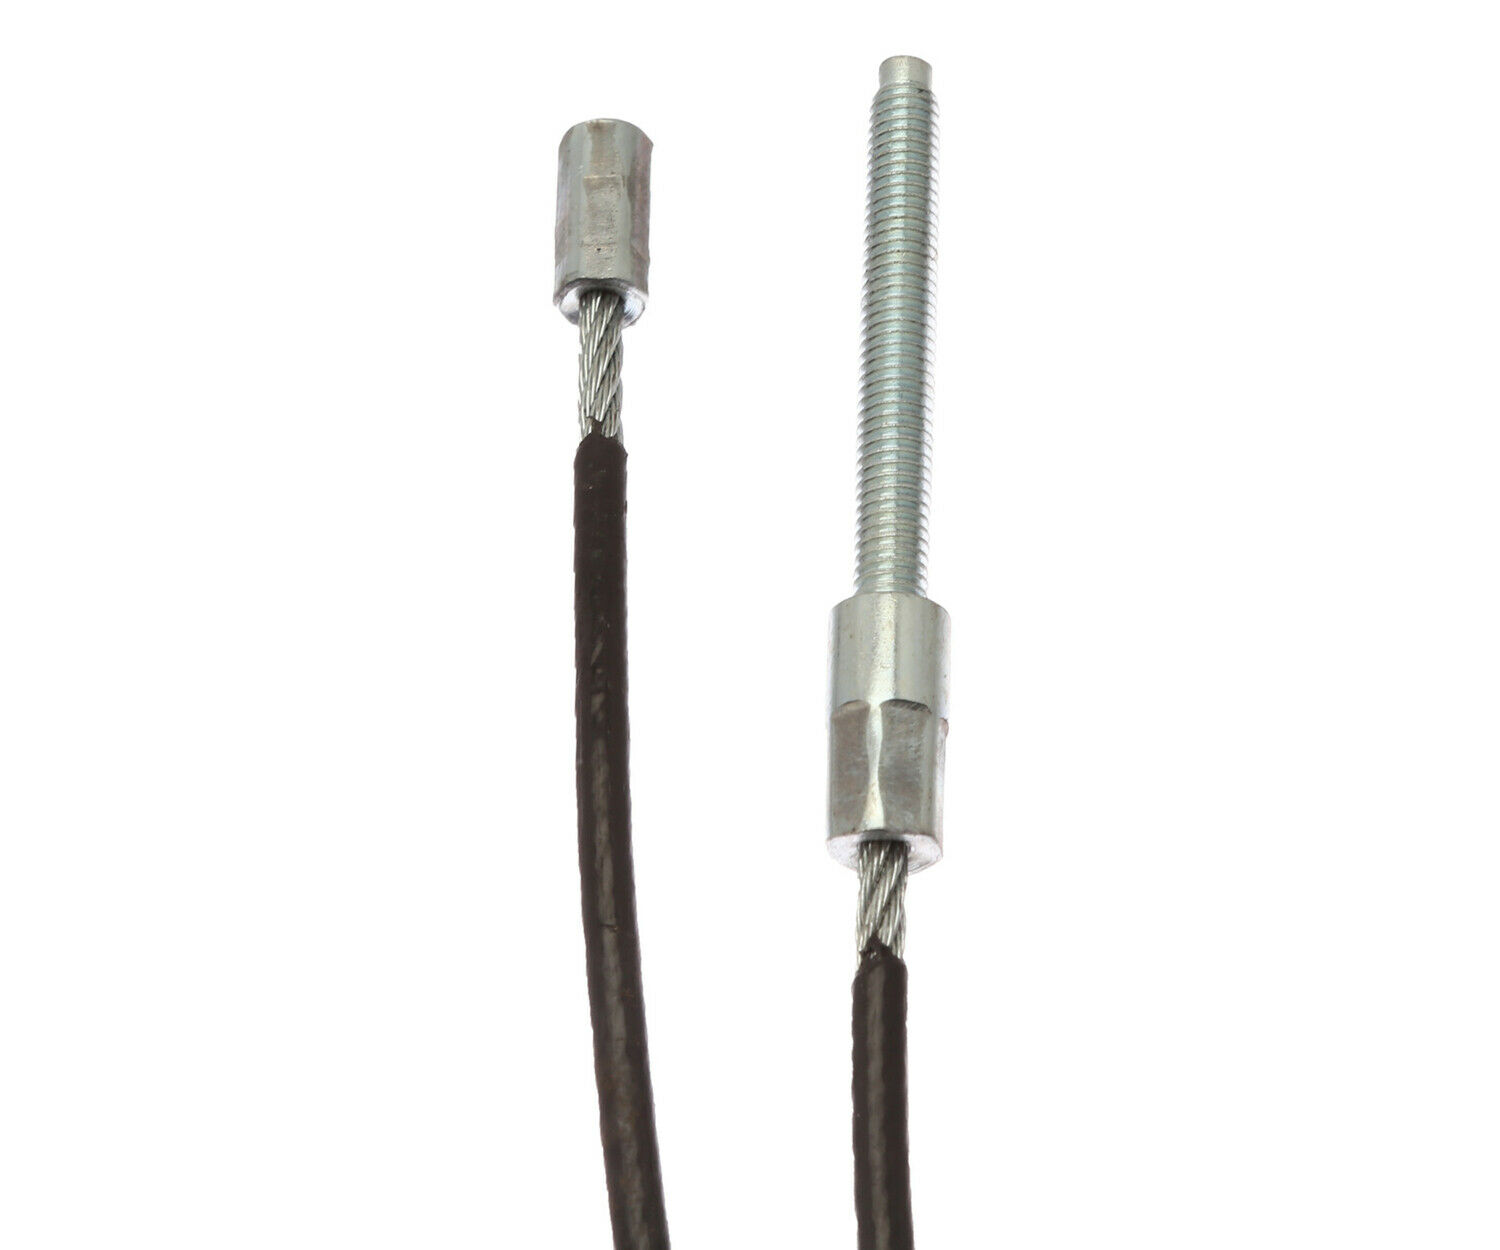 Parking Brake Cable-Element3 Rear Right Raybestos fits 03-07 Nissan Murano